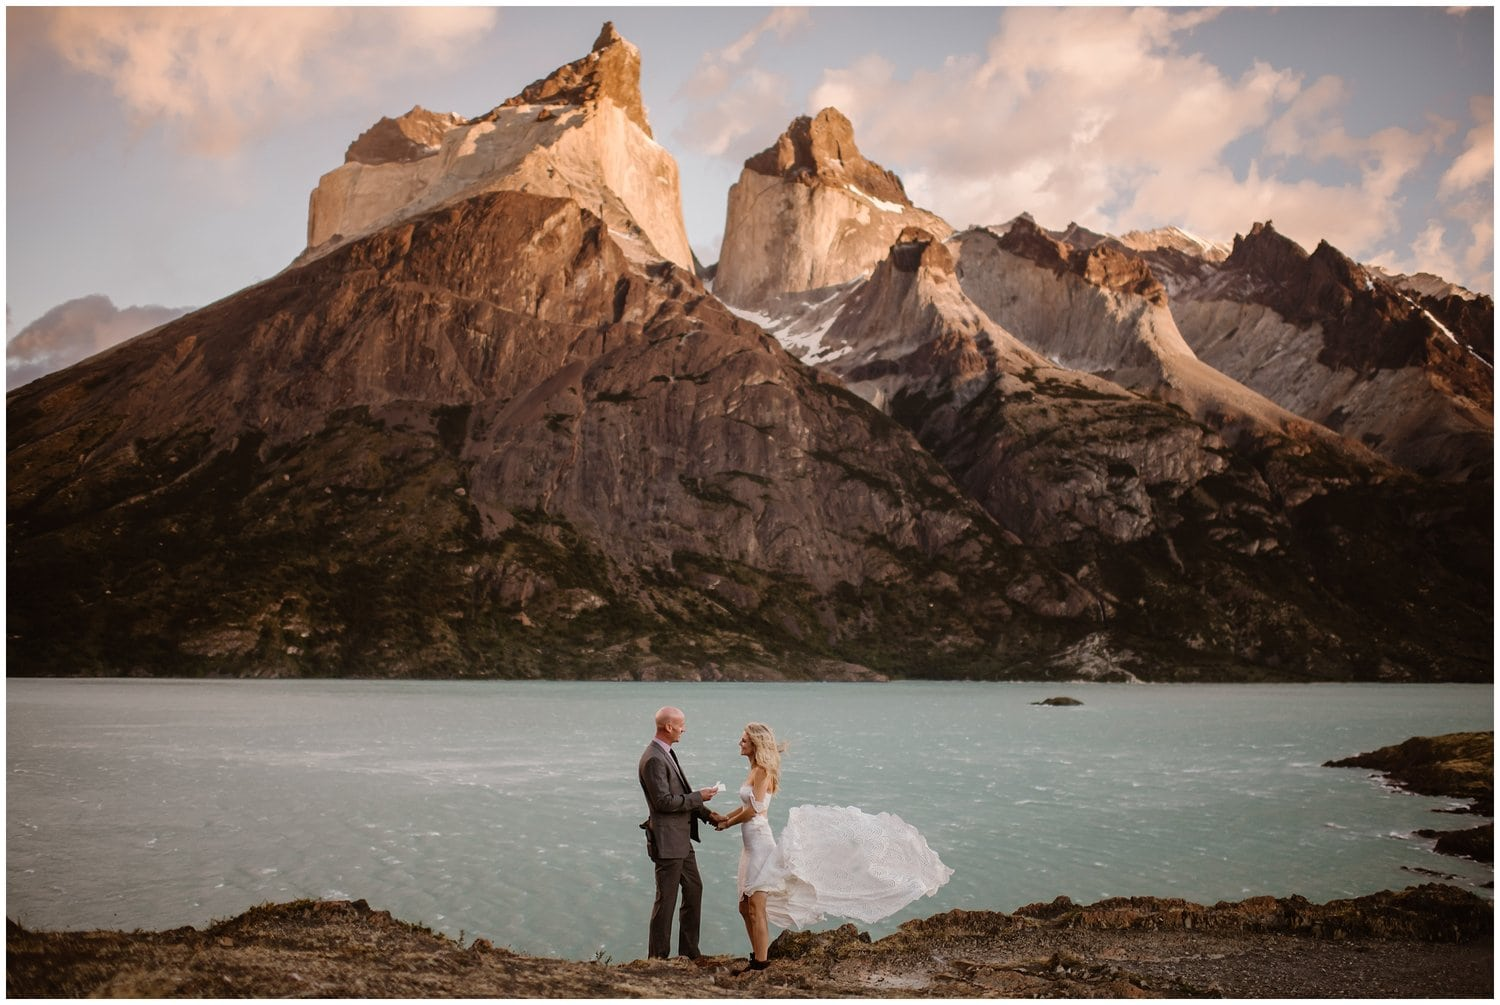 Bride and groom say their vows during their wedding ceremony in the mountains.